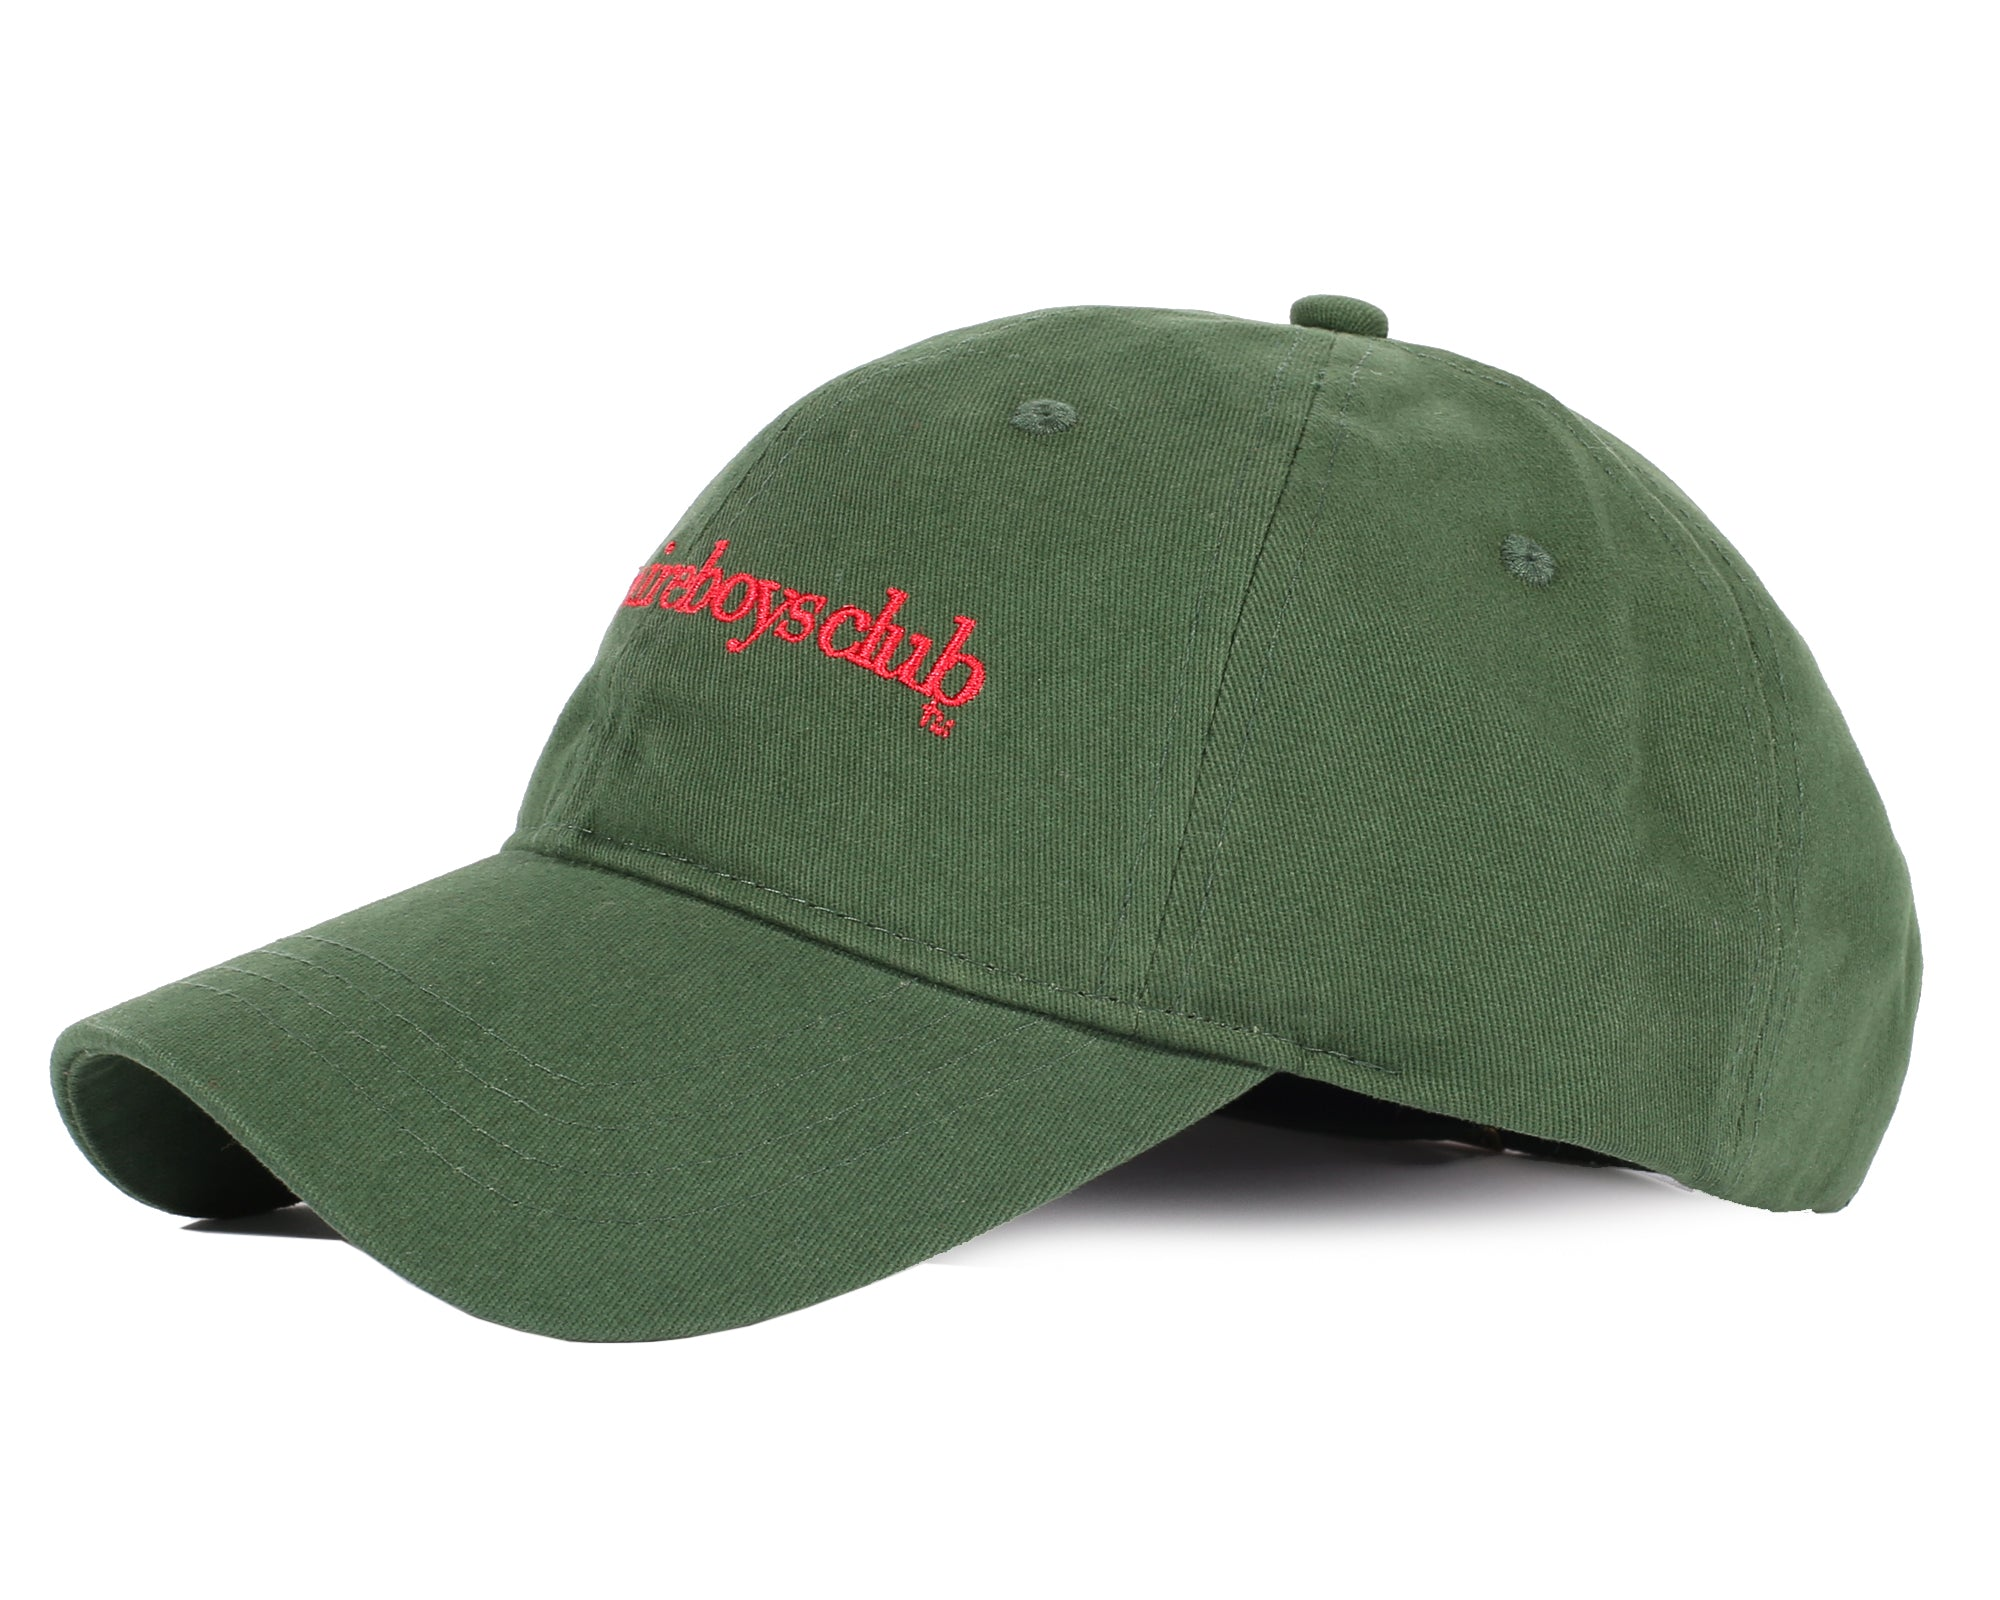 EMBROIDERED CURVED VISOR CAP - GREEN